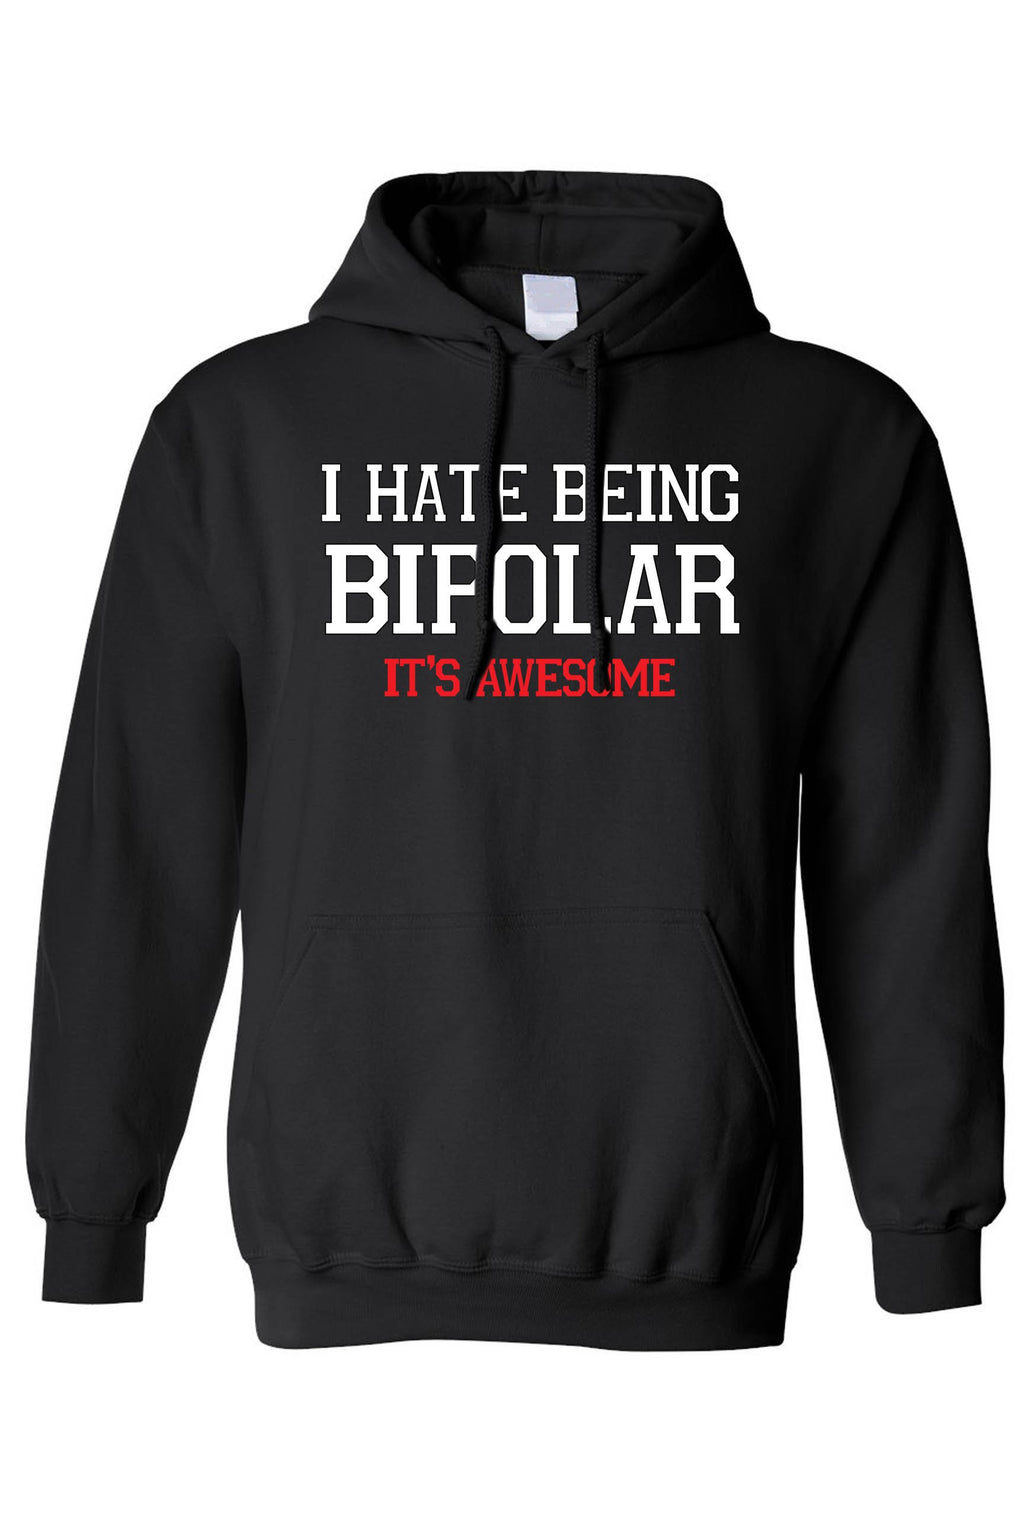 Pullover Hoodie I Hate Being Bipolar, It's AWESOME